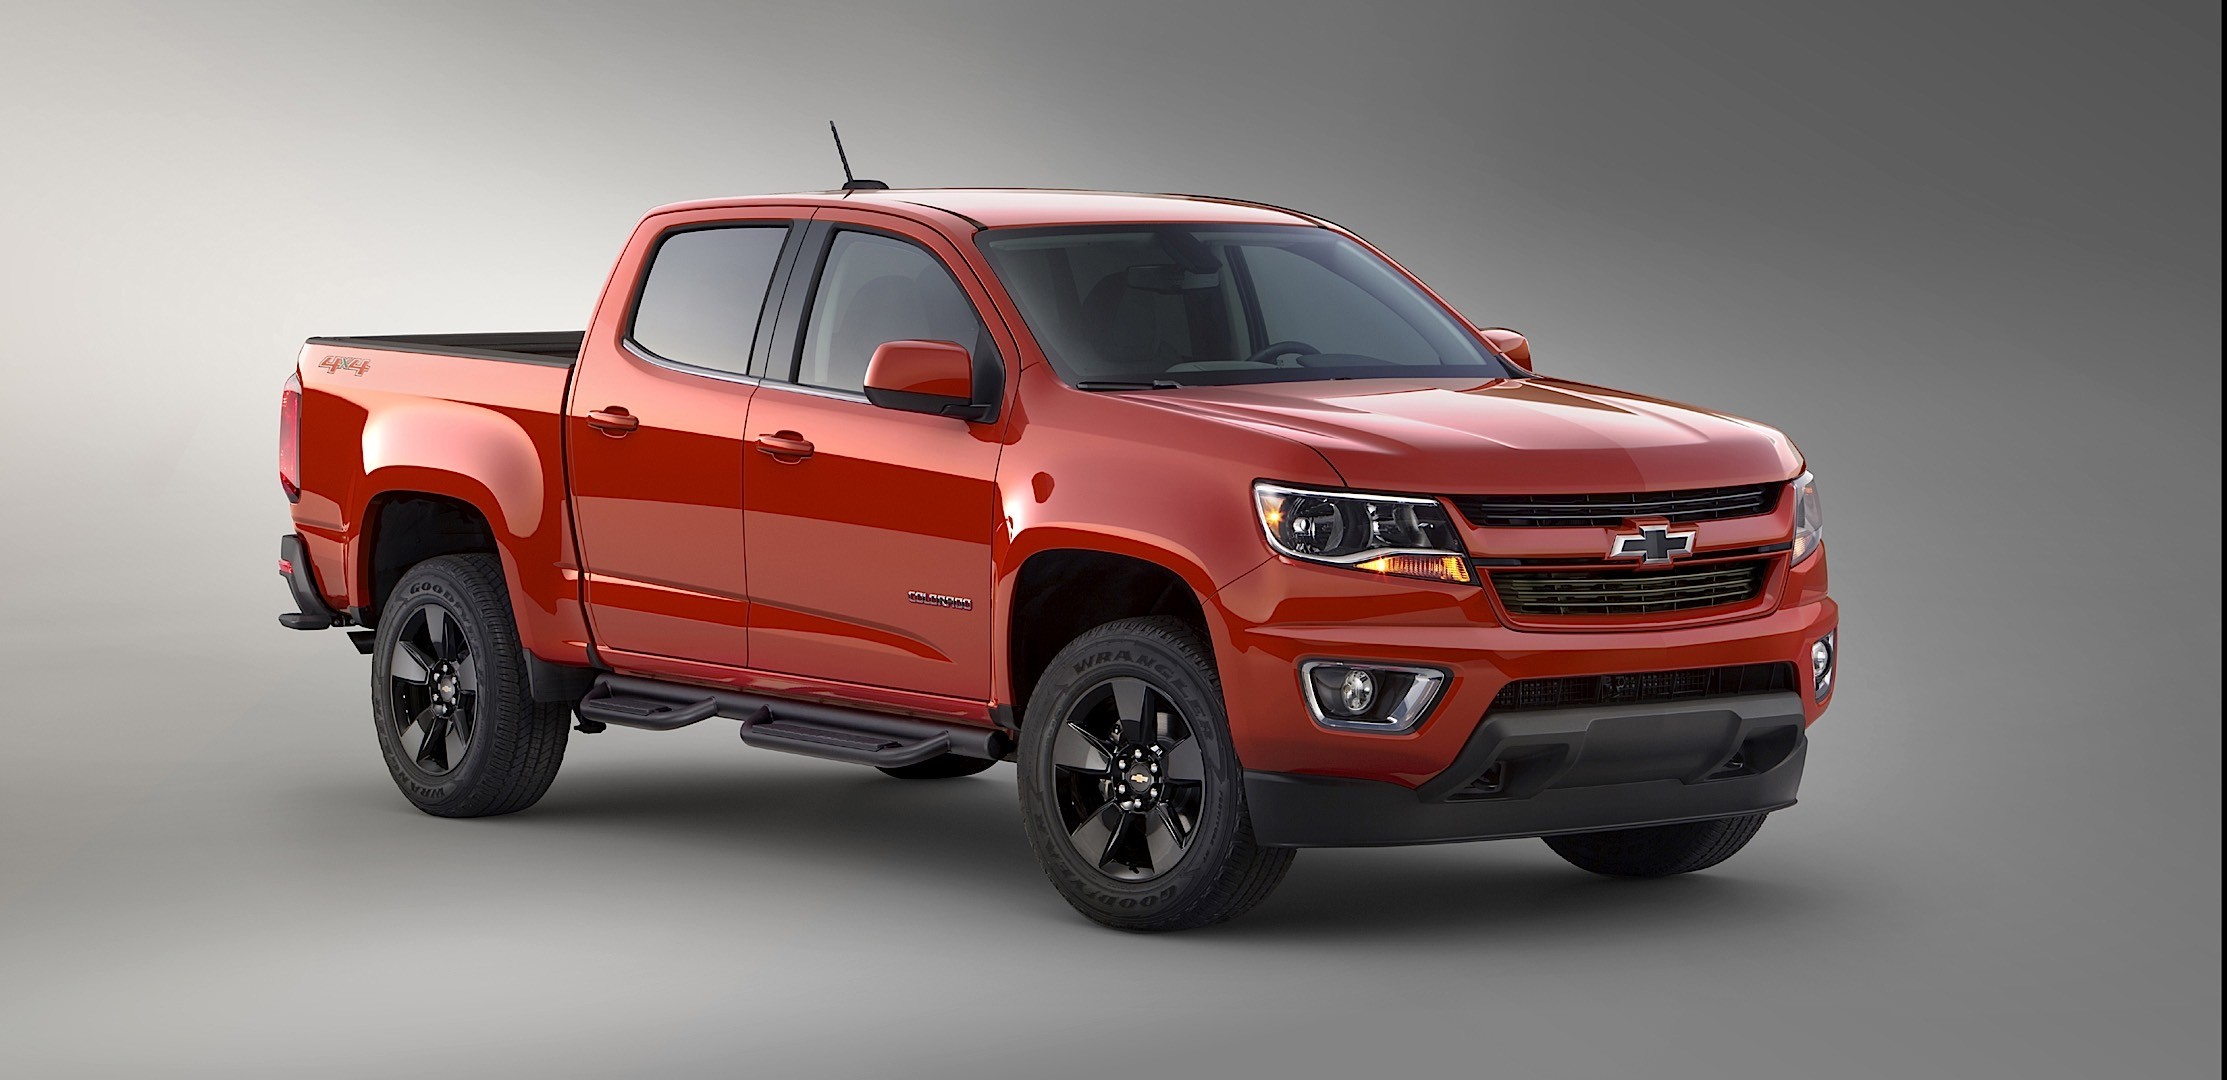 Chevy Colorado Crew Cab >> Chevrolet Colorado Crew Cab Specs Photos 2015 2016 2017 2018